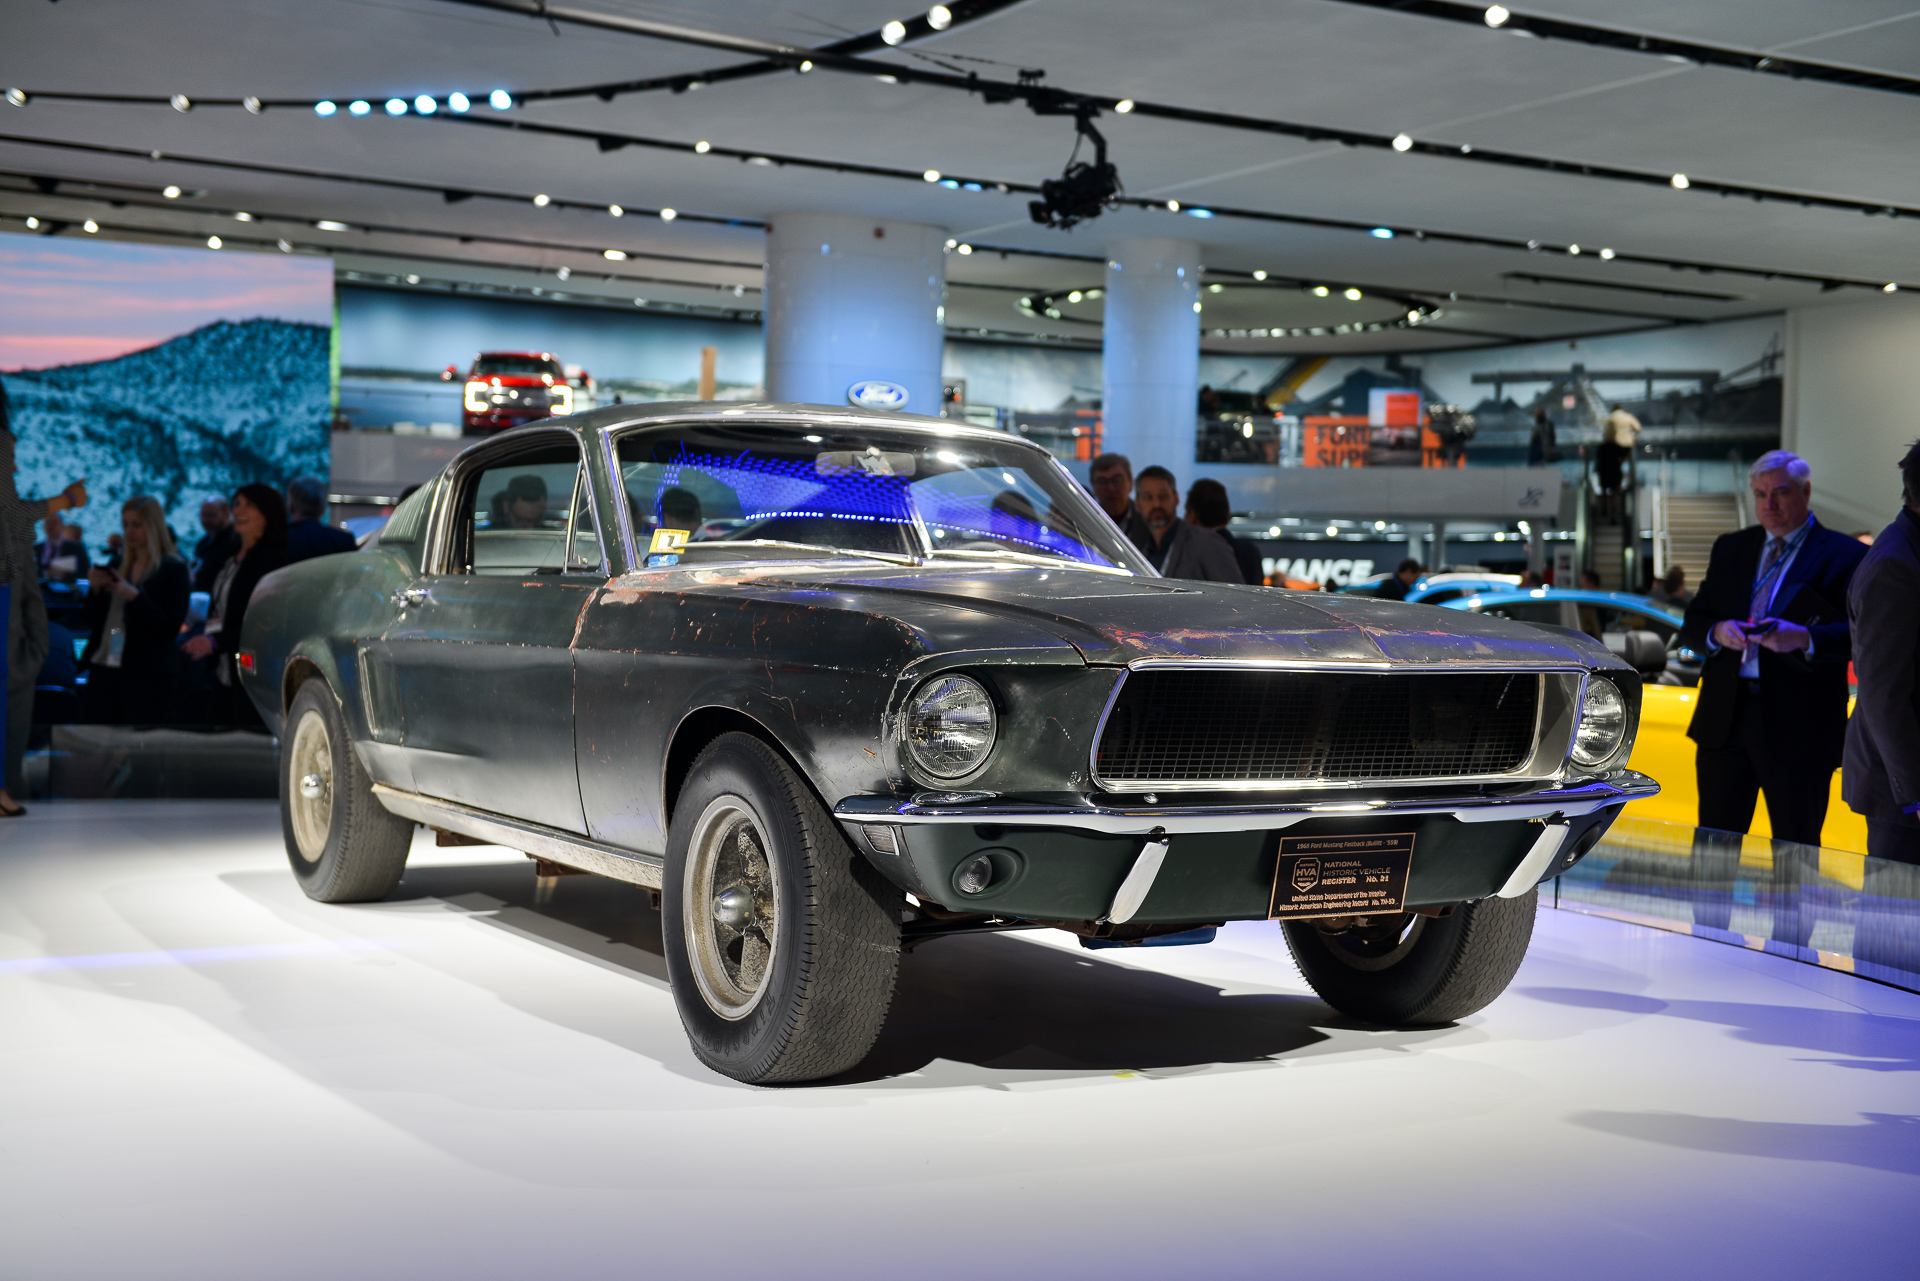 Long Lost 1968 Mustang From Bullitt Likely Worth Millions Events Car S Ford Videos